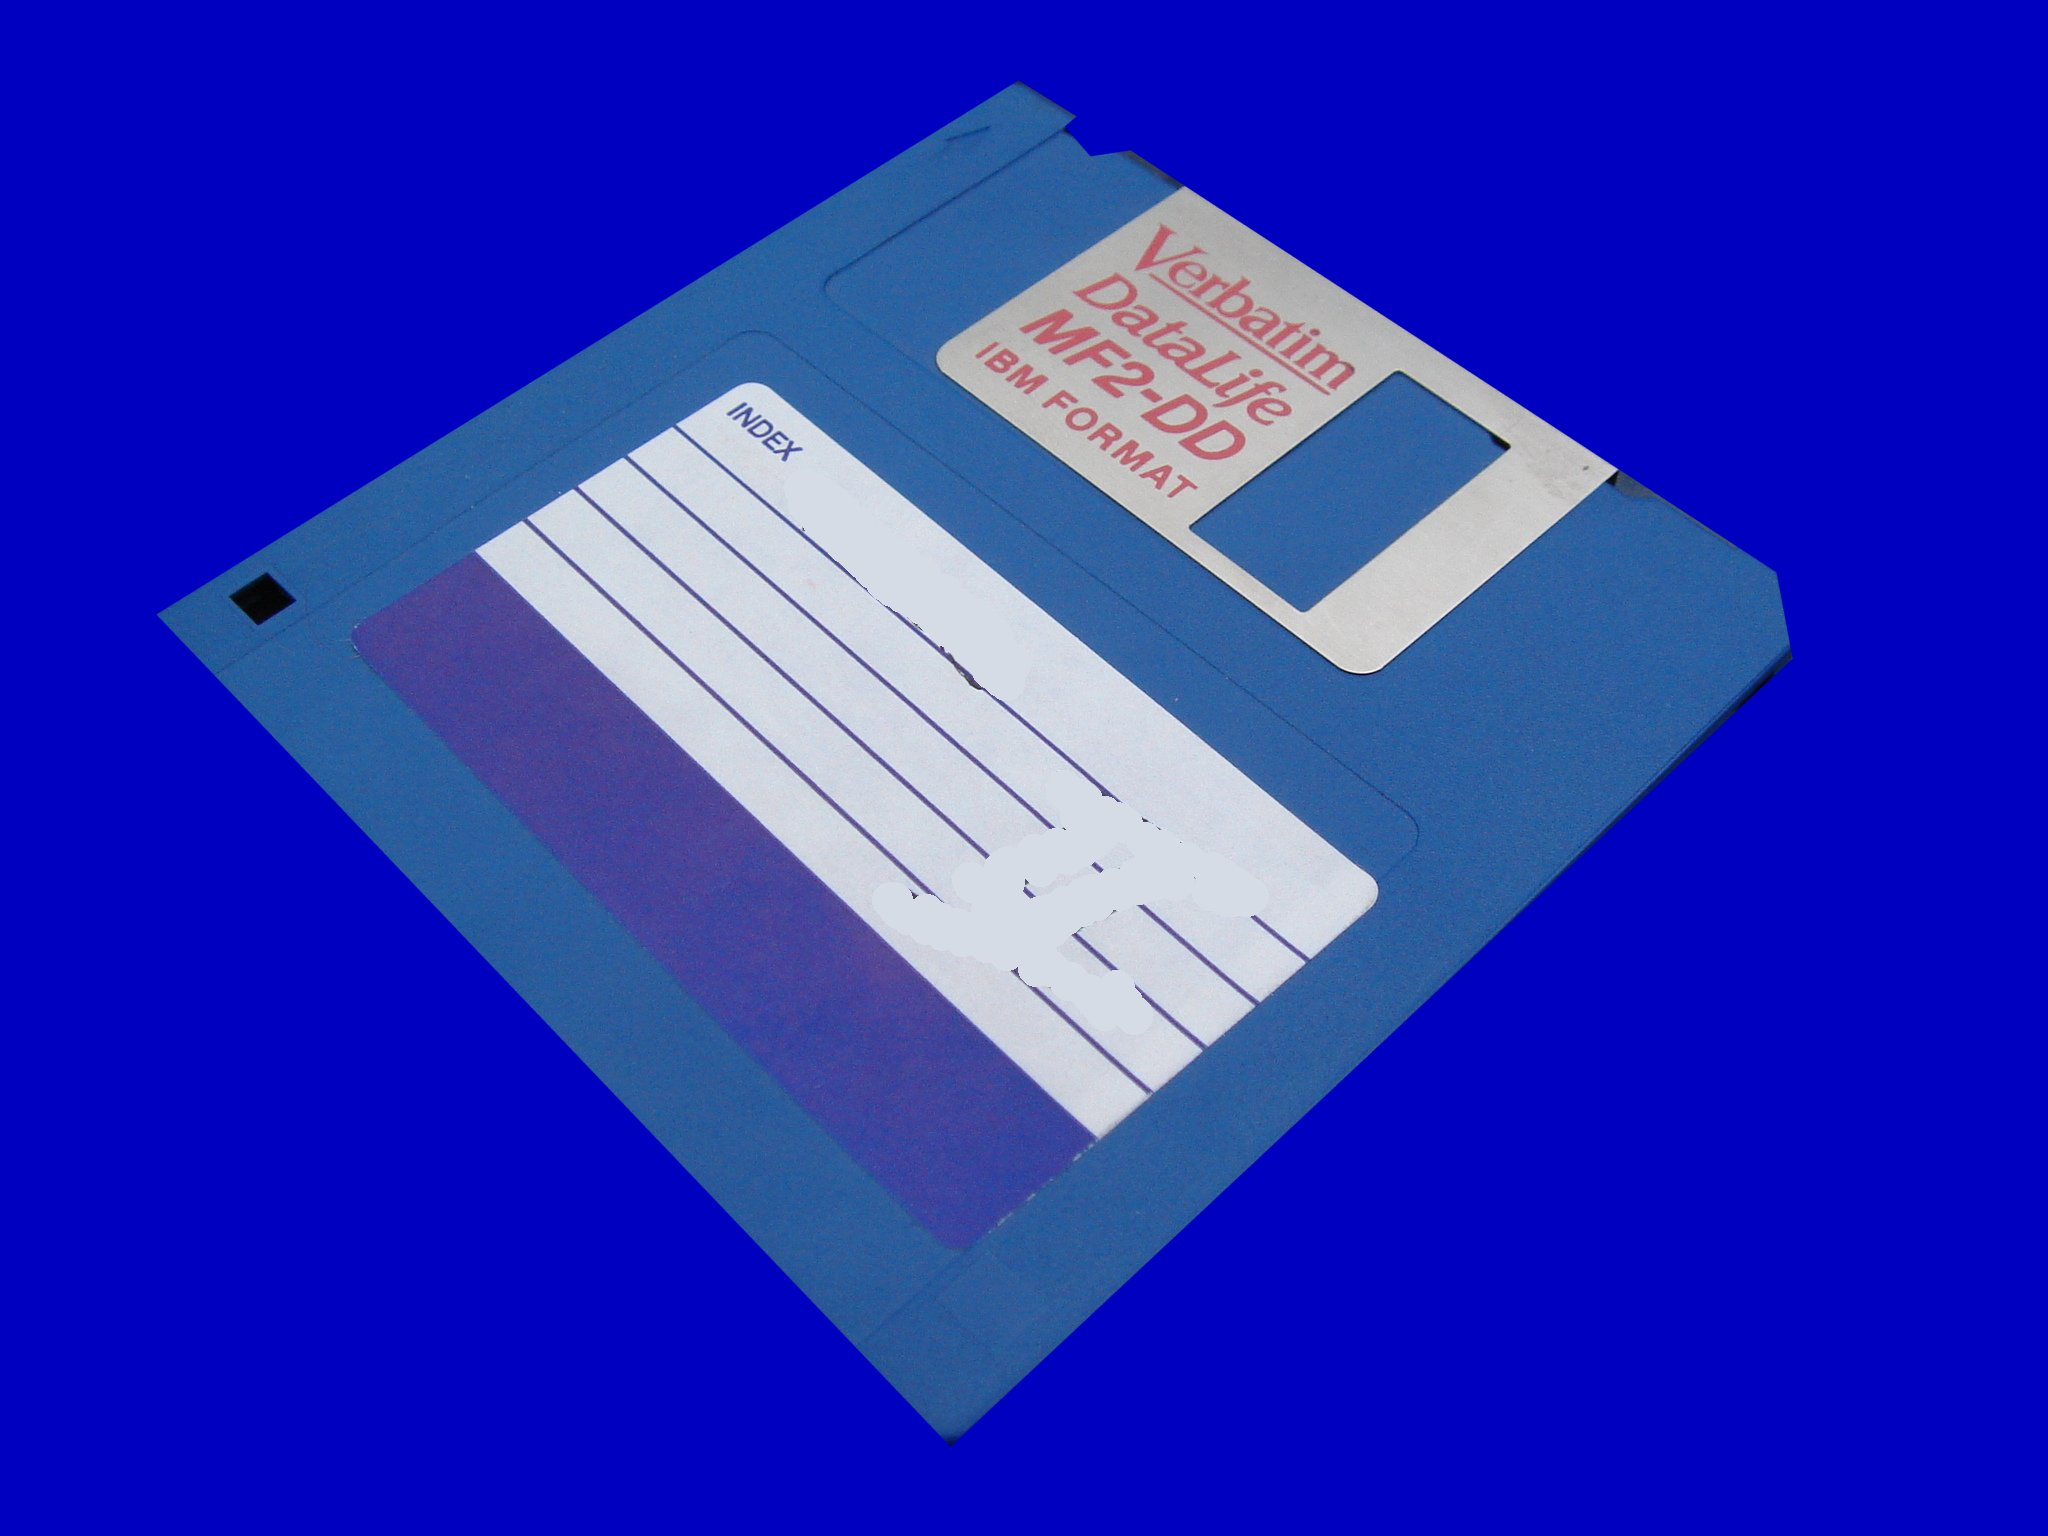 A floppy disk containing old MacWrite word processor files from an Apple OS7 computer.